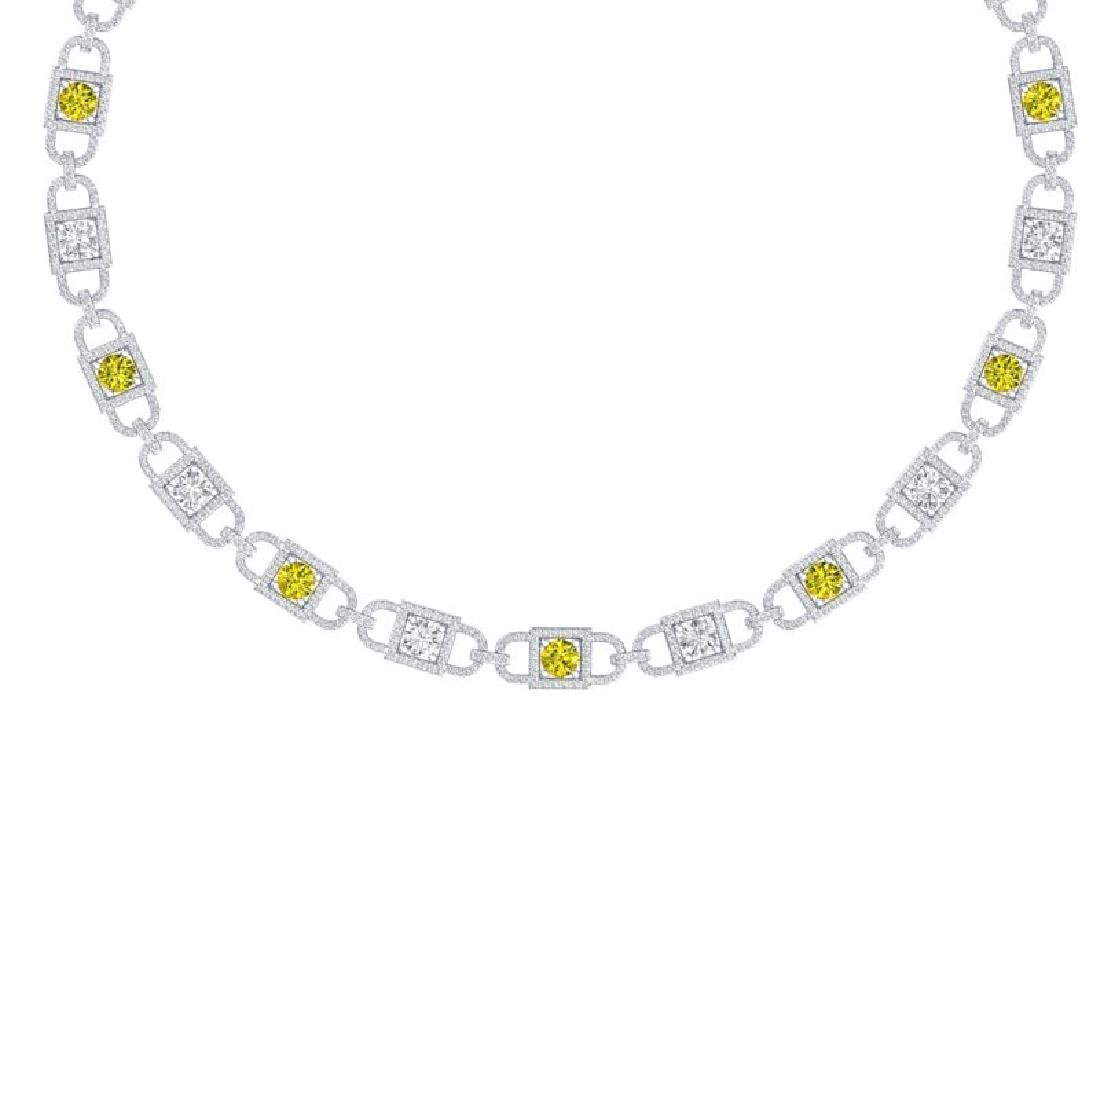 20 CTW SI/I Fancy Yellow And White Diamond Necklace 18K